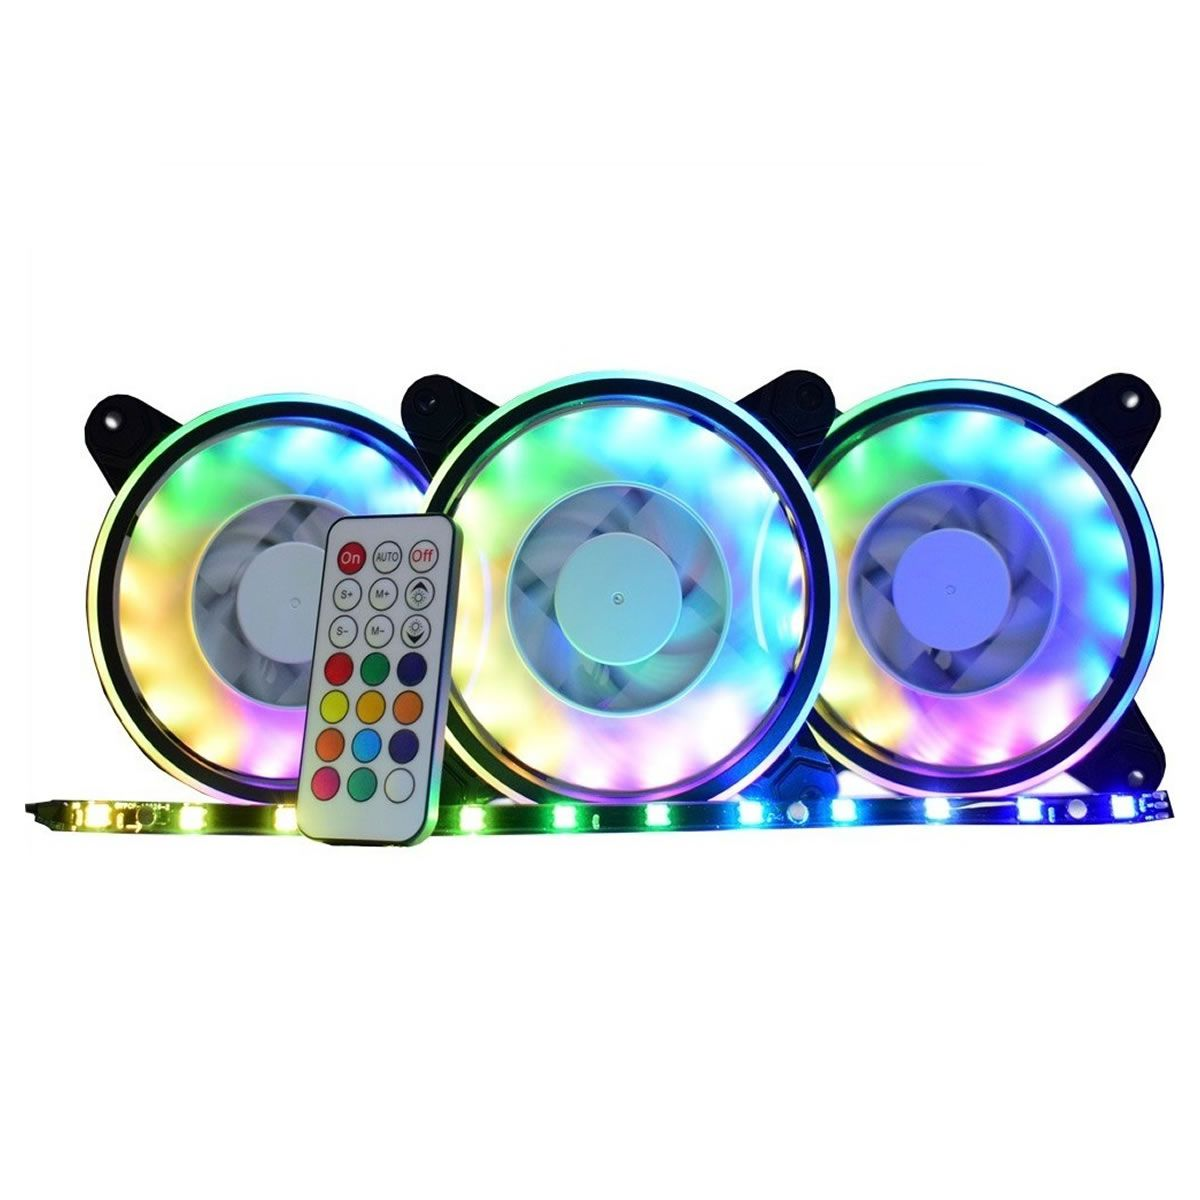 Kit 3 Coolers Fan RGB ARGB Rainbow com Fita LED AF-Y1225 KMEX para Gabinete